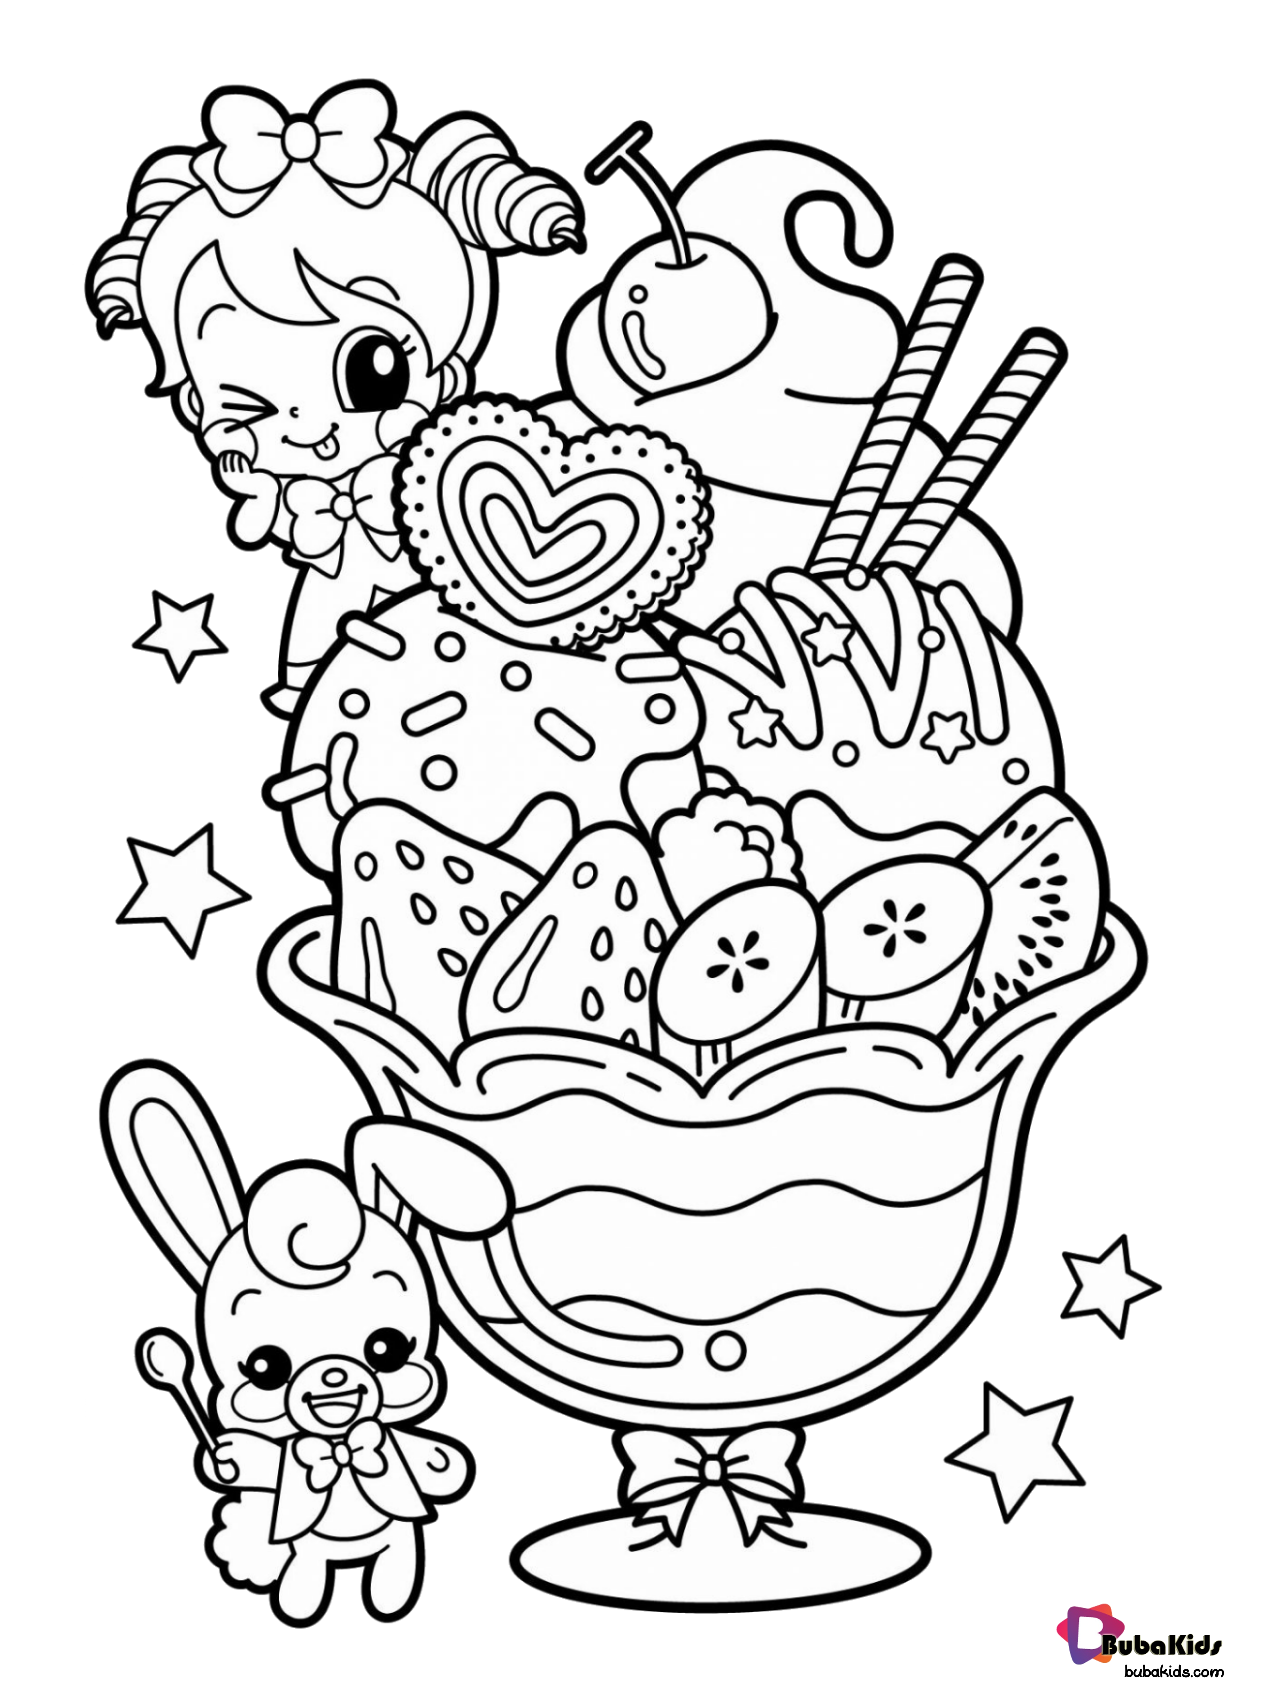 Food Coloring Page For Kids Collection Of Cartoon Coloring Pages For Teenage Printable Emoji Coloring Pages Food Coloring Pages Kids Printable Coloring Pages